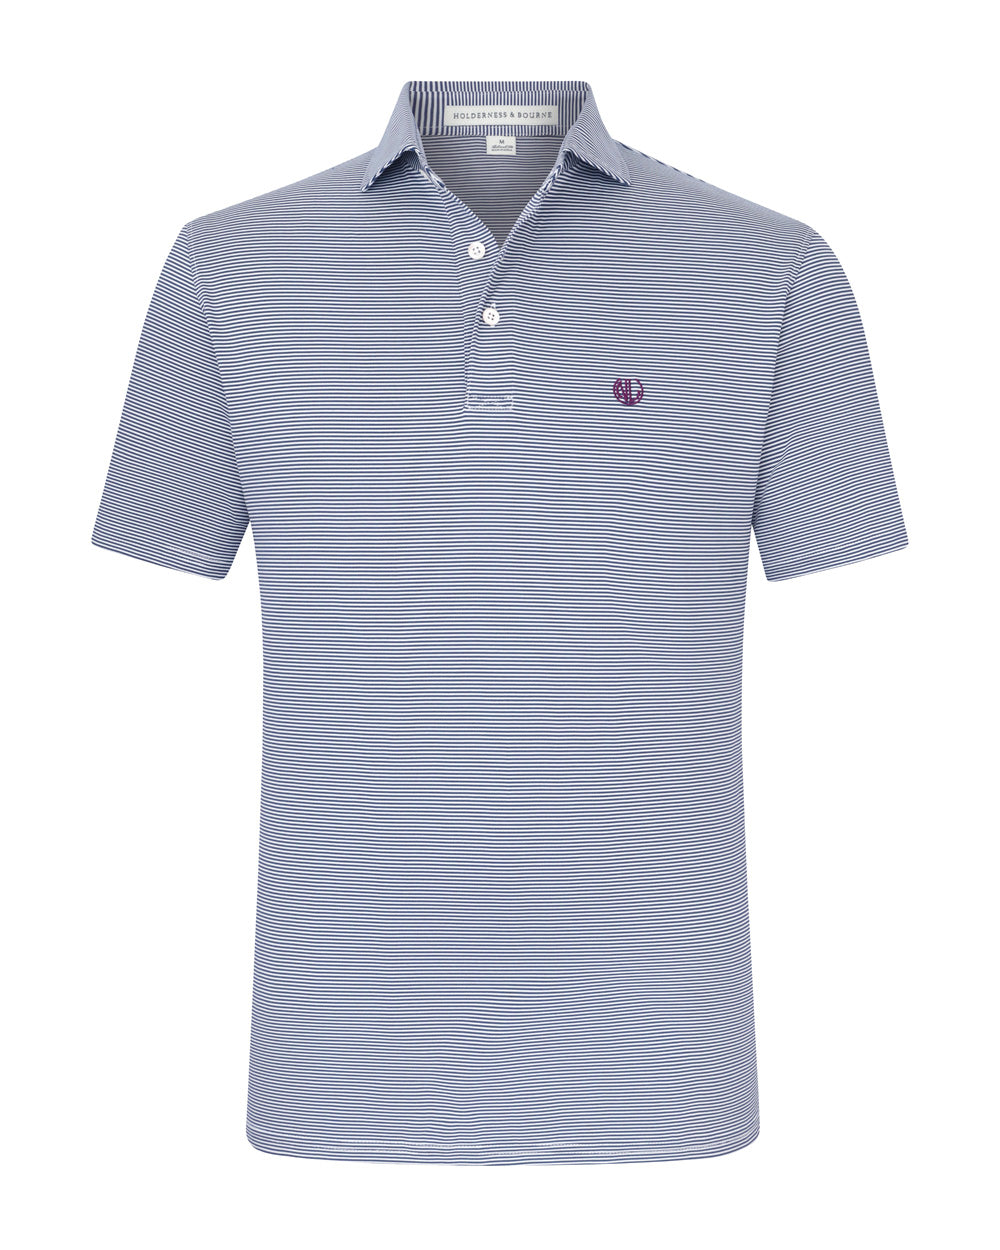 NLU + H&B Polo | Navy & White